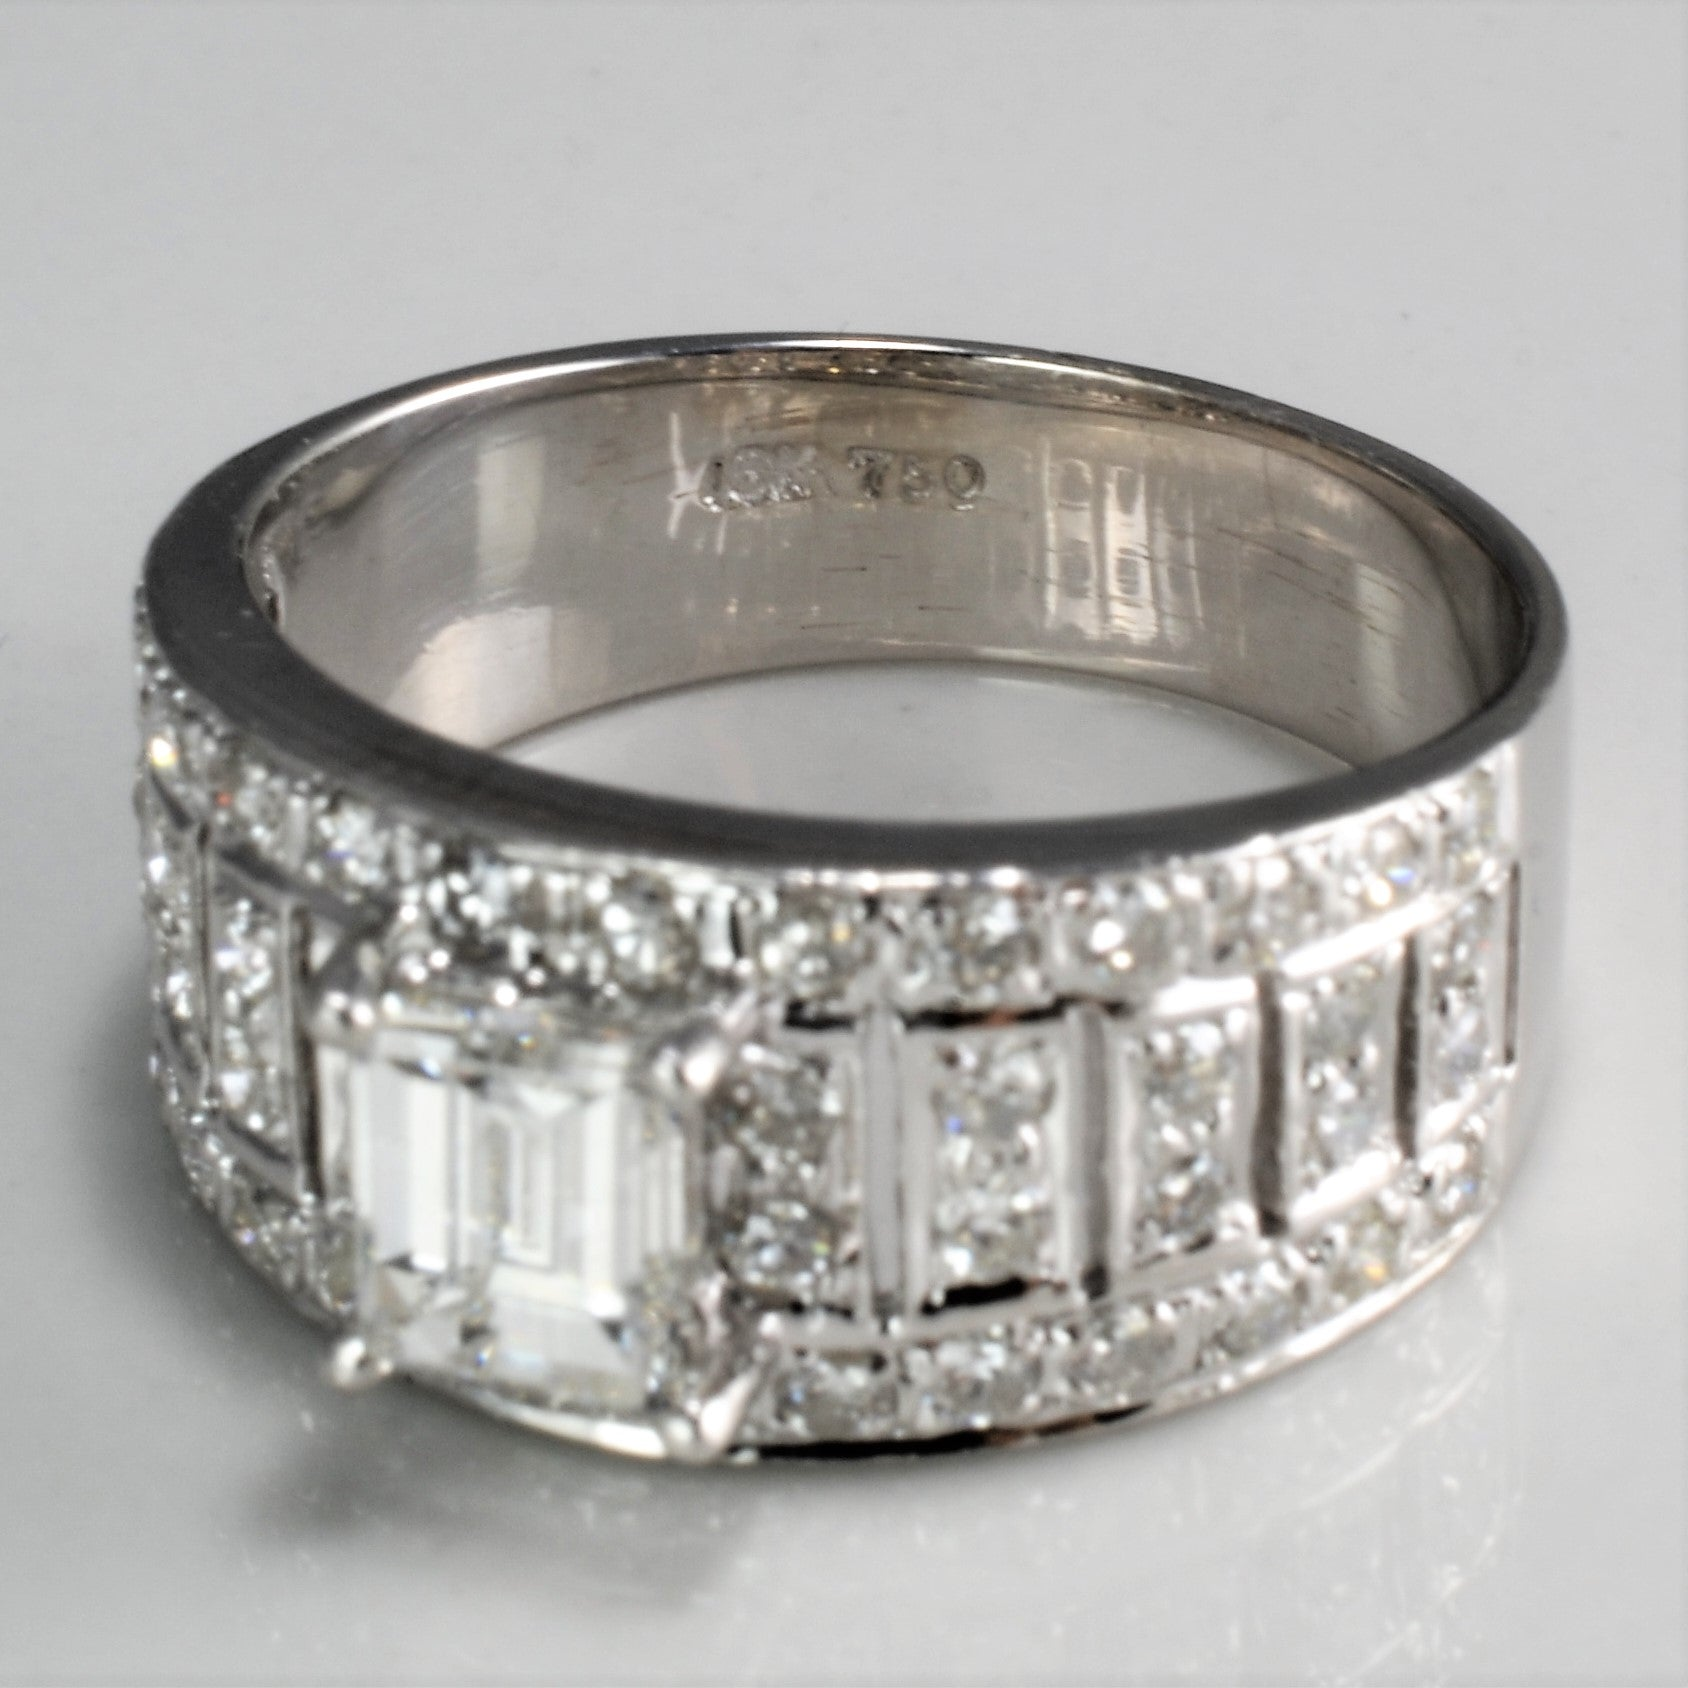 Fancy Multi- Diamond Wide Ring | 1.19 ctw, SZ 5.5 |